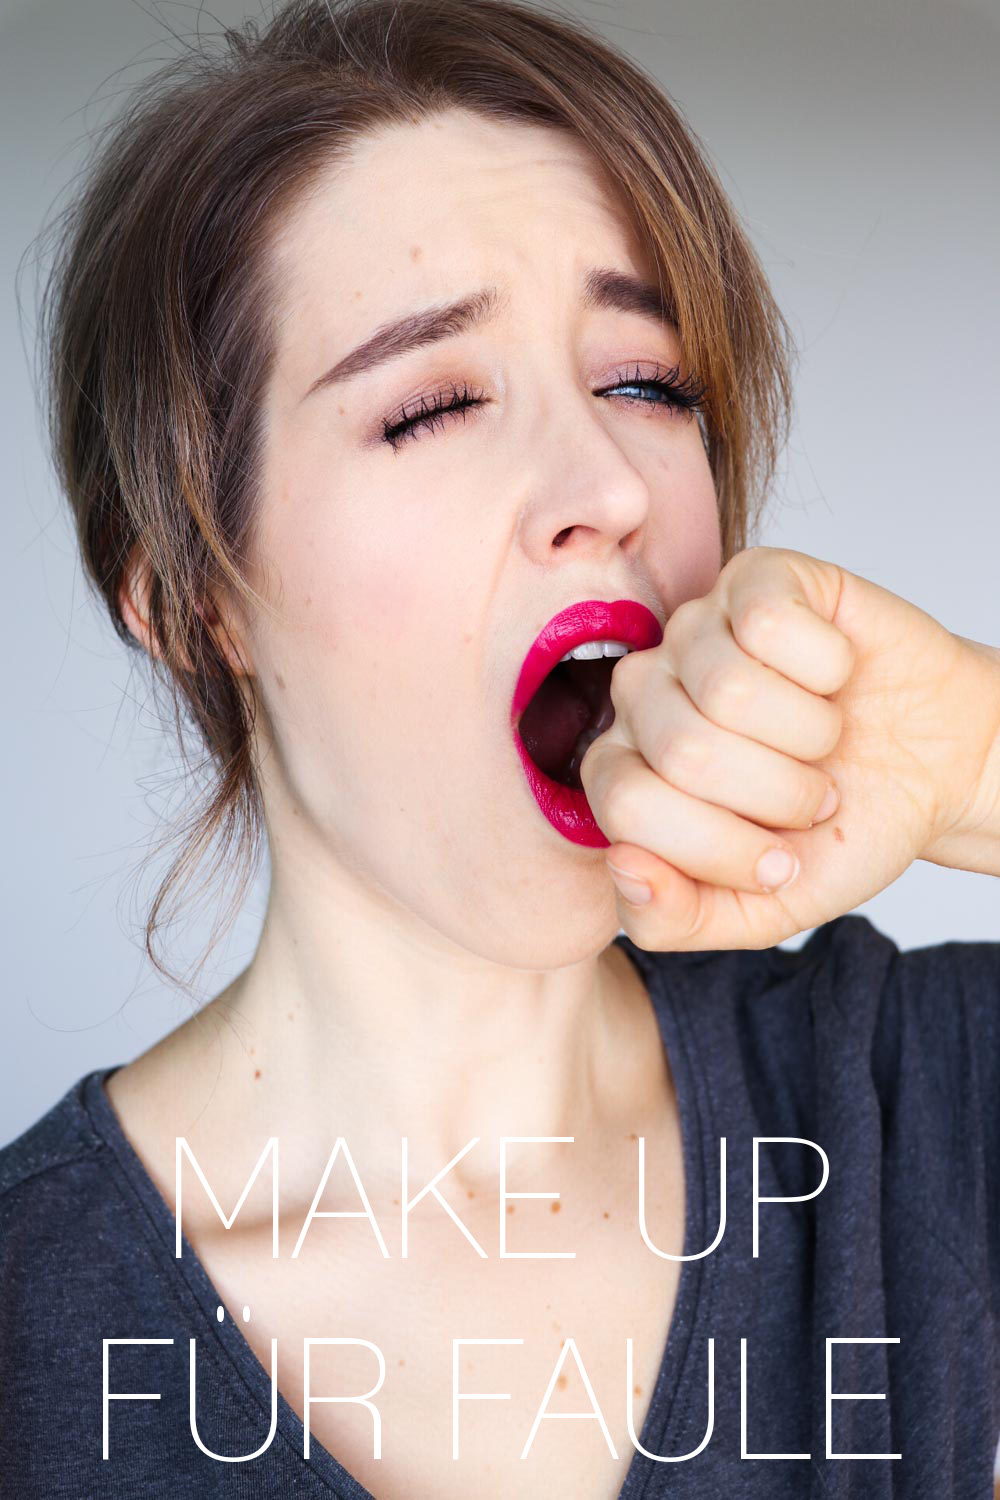 Make Up für Faule